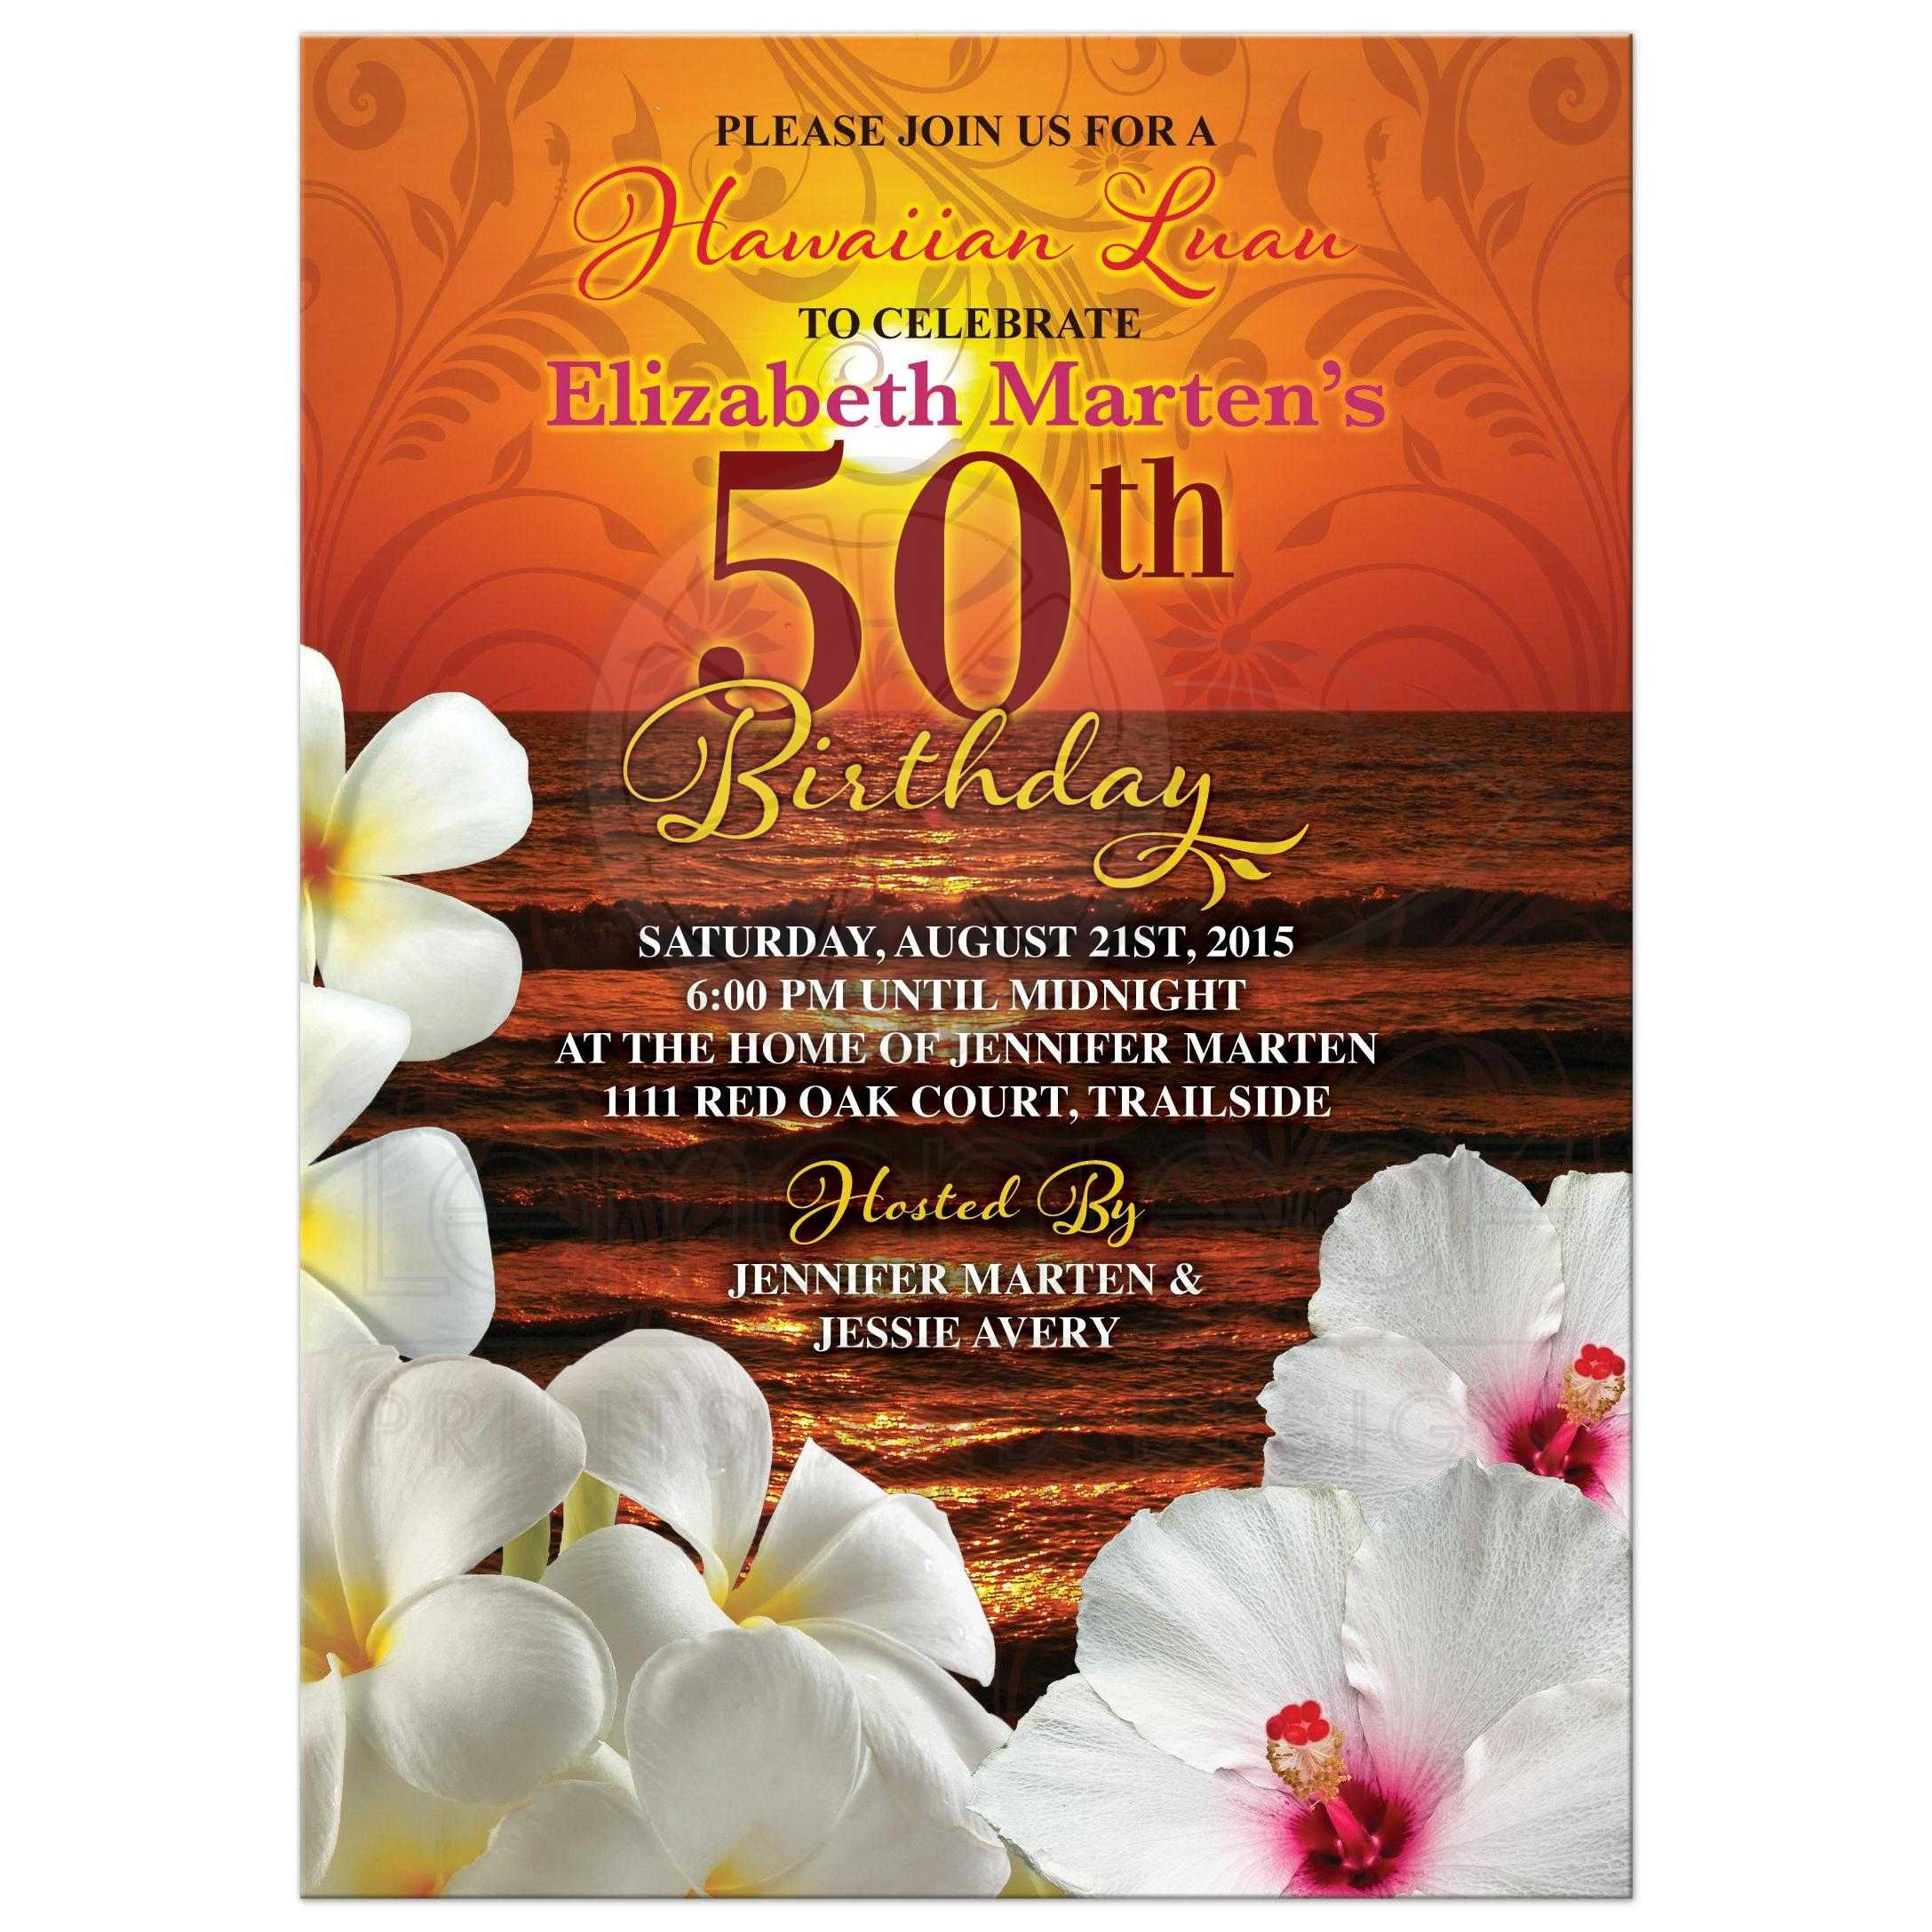 Sunset Beach Hawaiian Luau 50th Birthday Invitation – Tropical Birthday Invitations